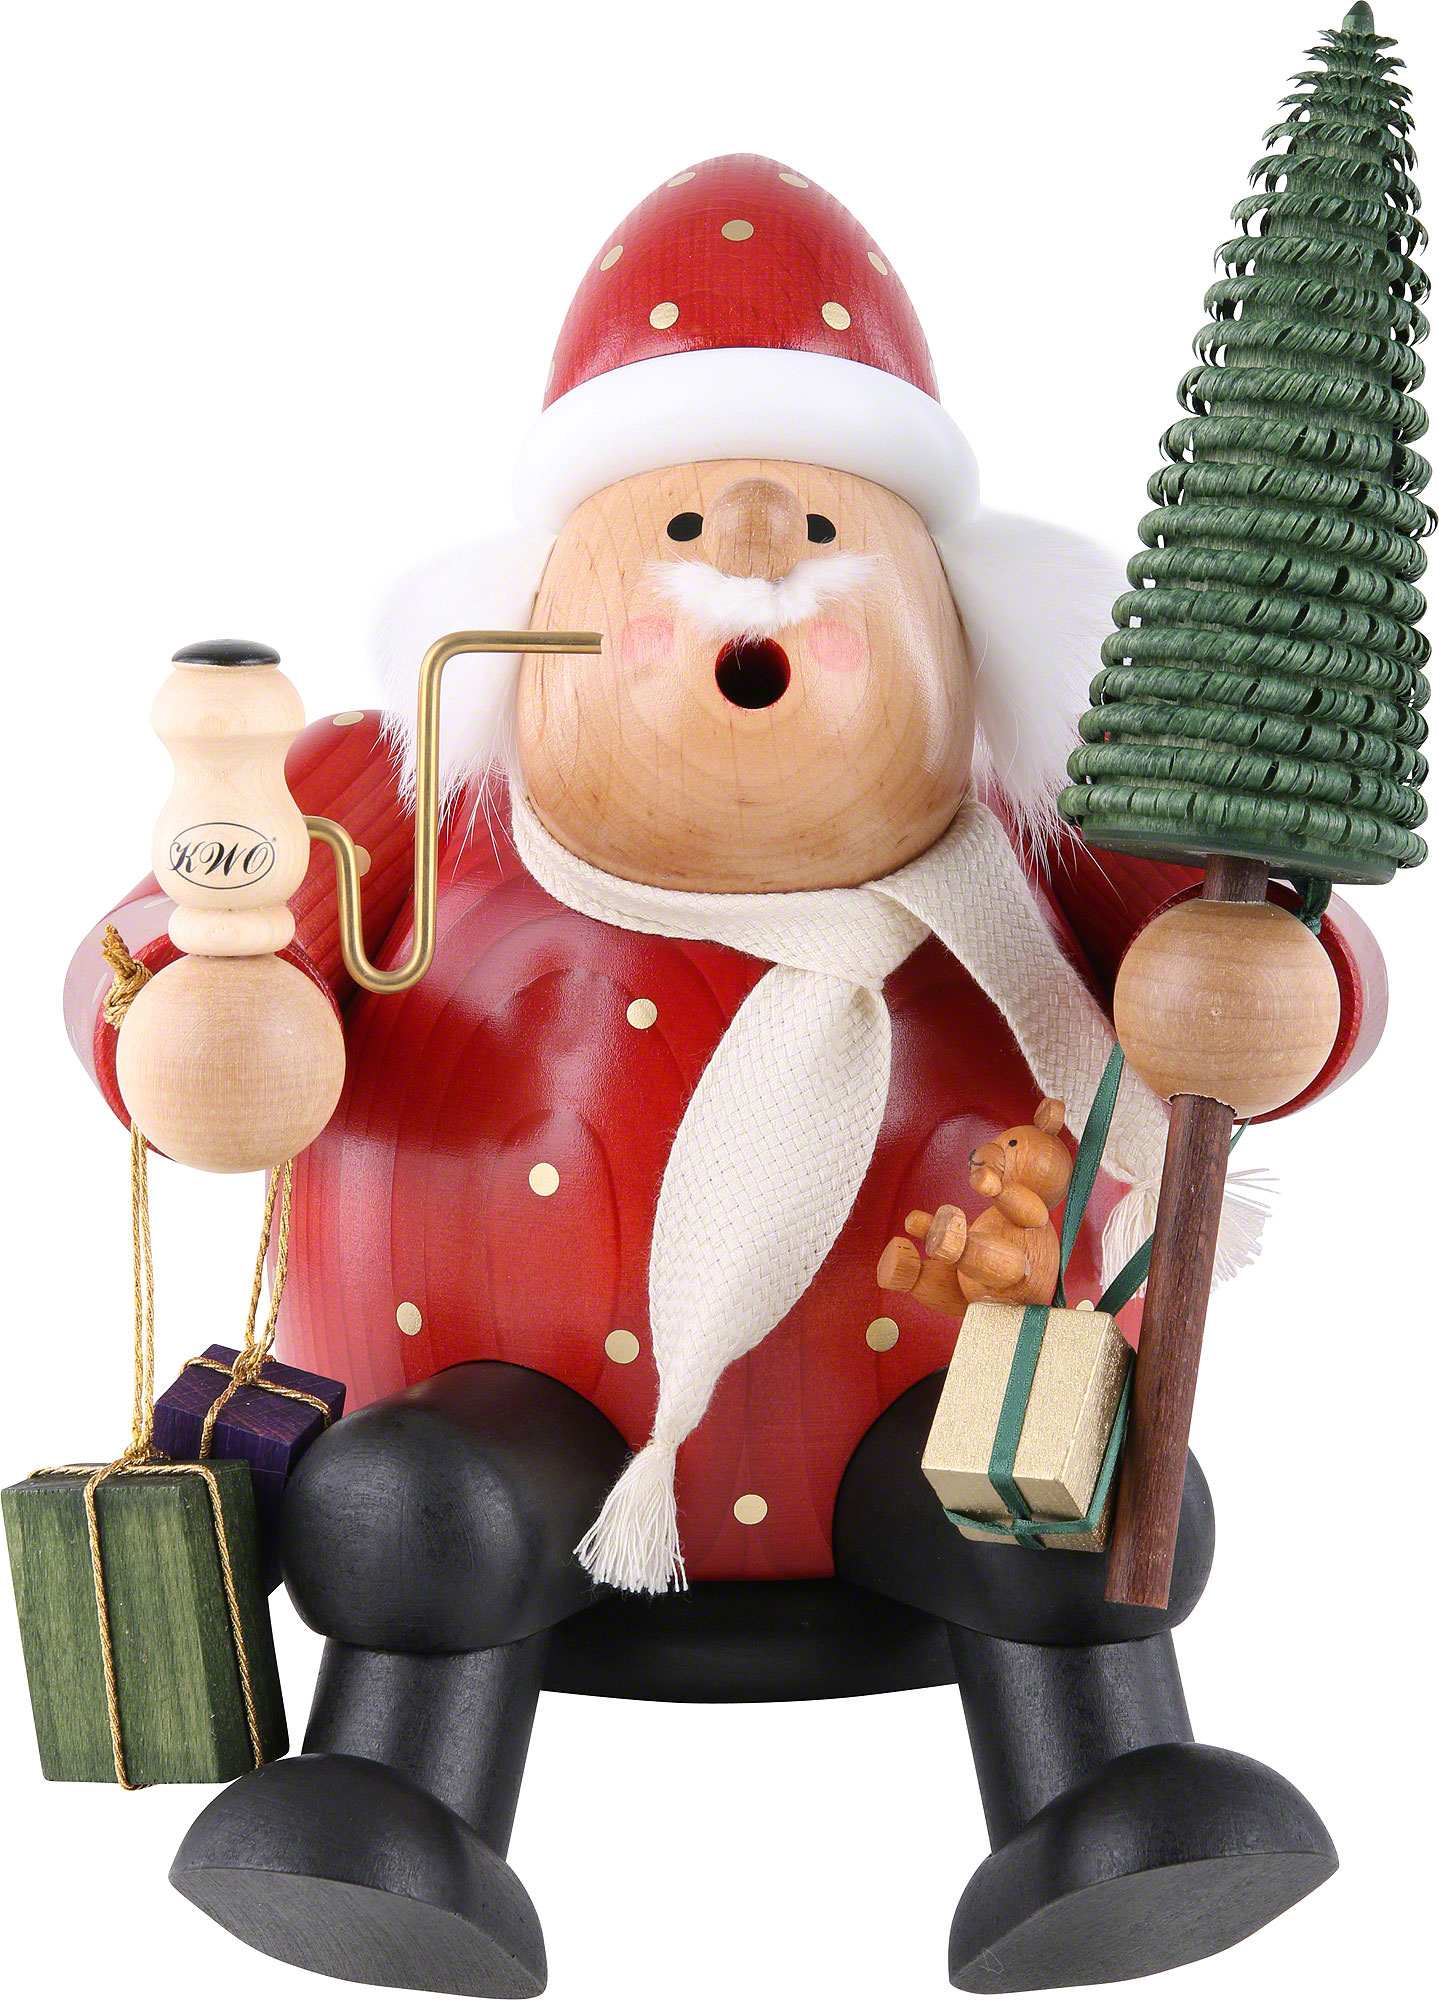 claus ip size standing santa life foot decorations huge walmart decorative com plush decor